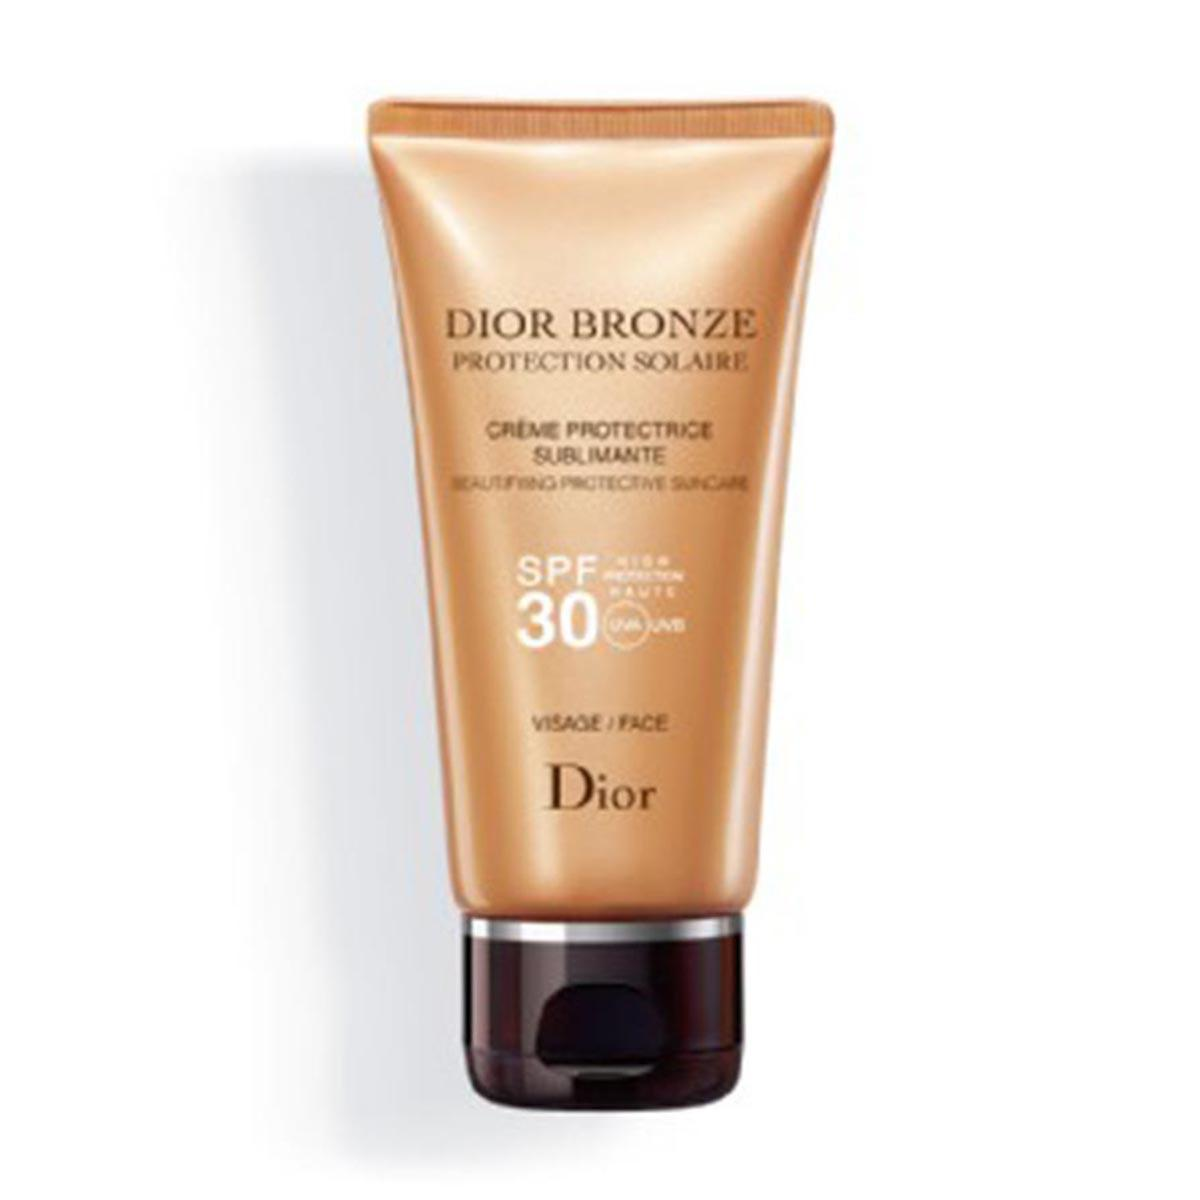 Christian dior Bronze Protective Creme Sublime Glow Face Spf30 50 ml